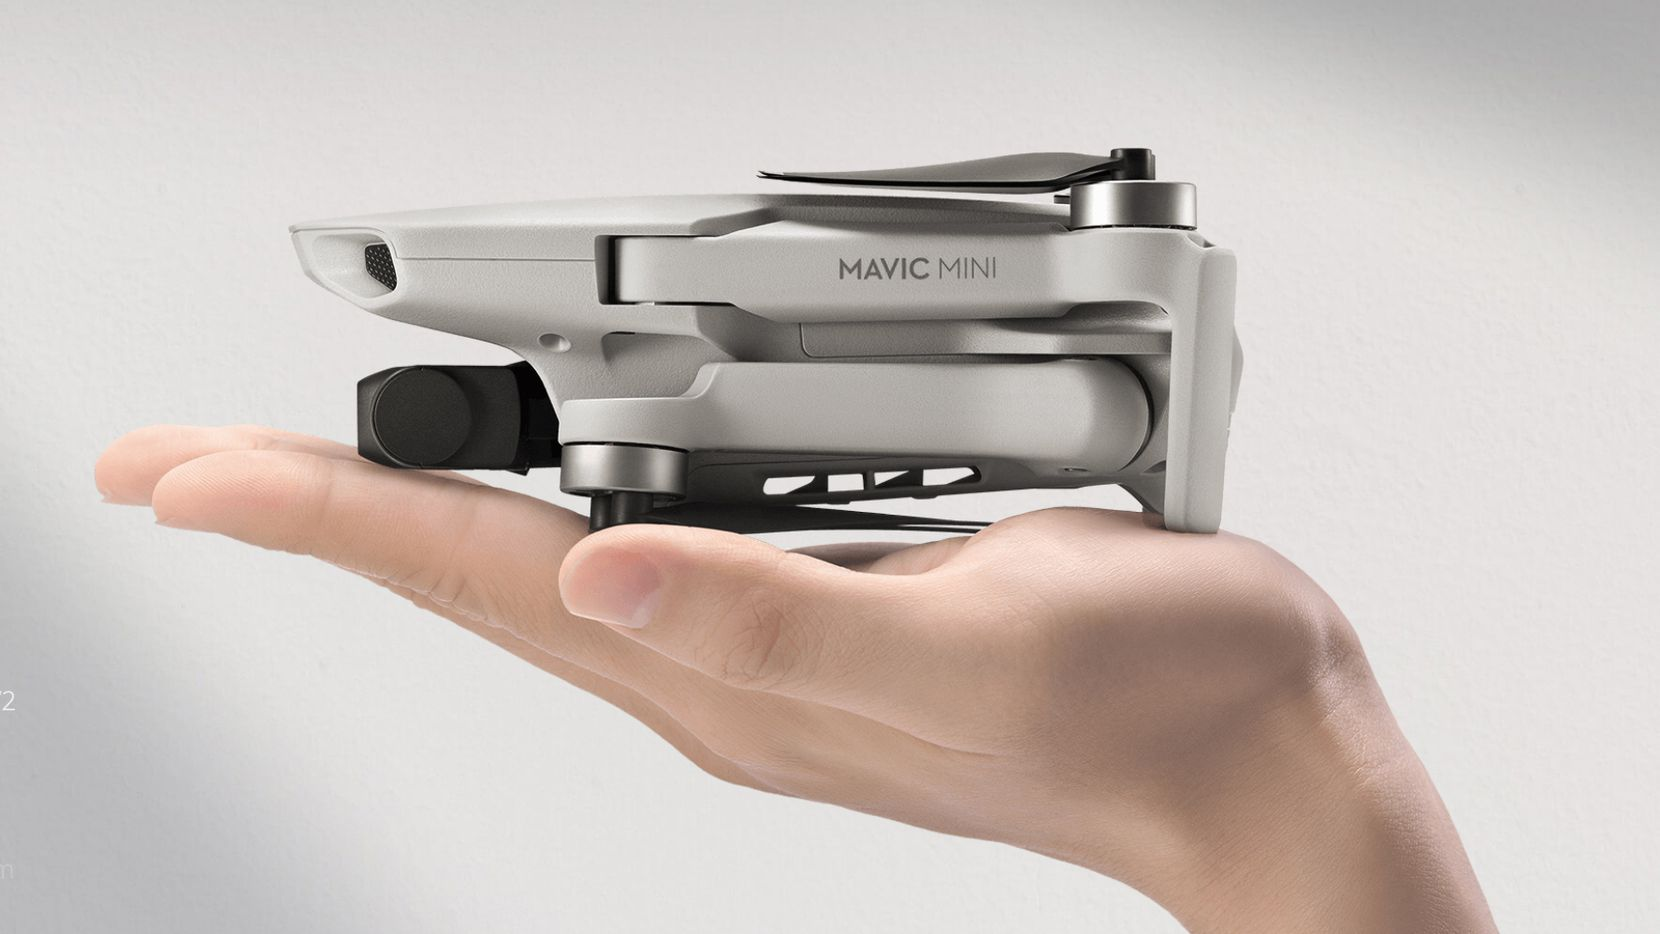 The DJI Mavic Mini, folded up it fits in the palm of your hand.